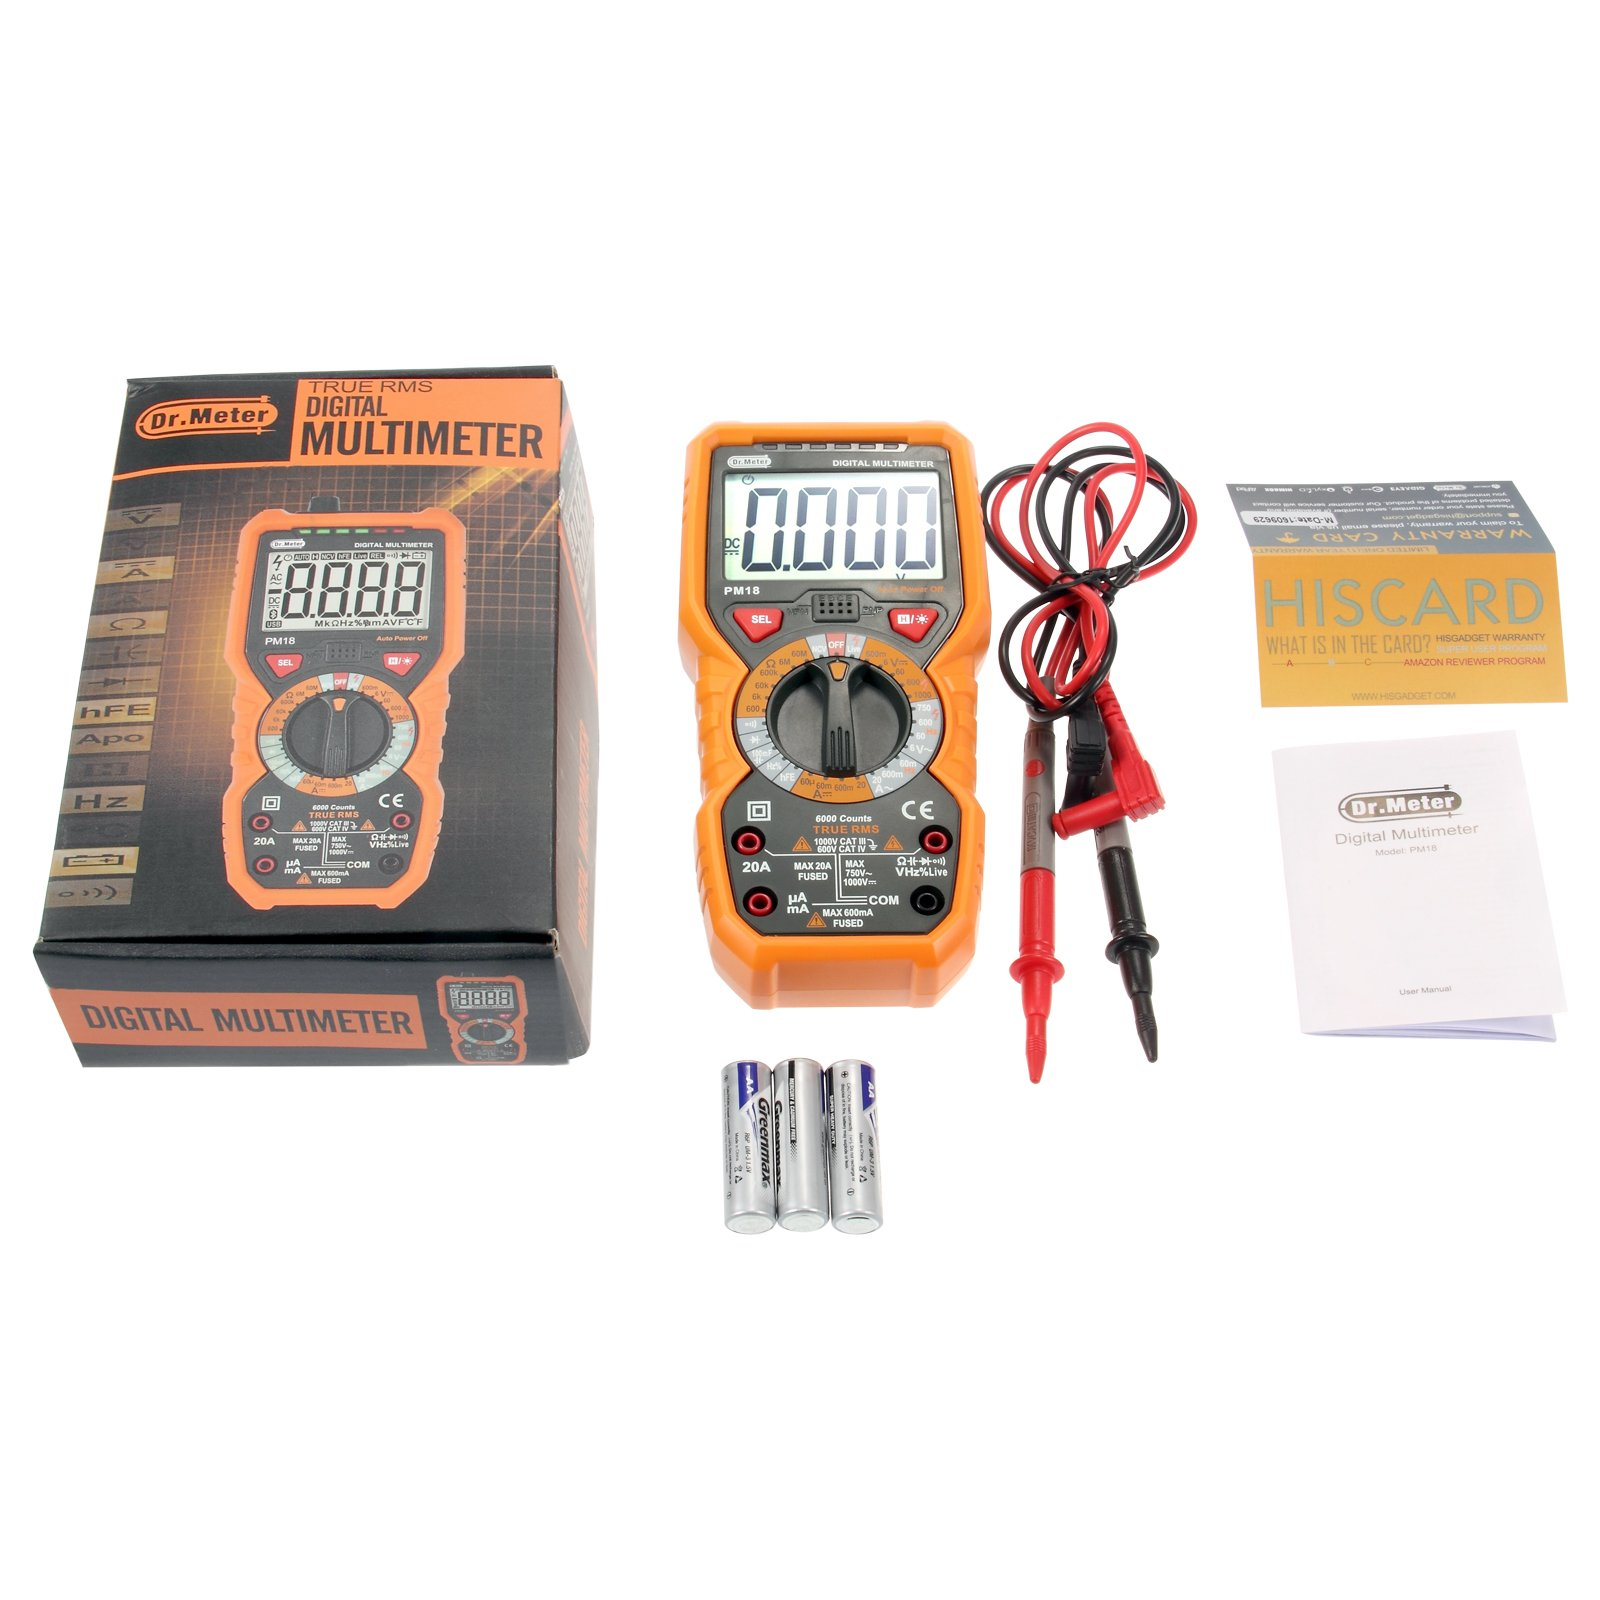 [Digital Multimeters] Dr.meter Digital Multimeter Trms 6000 Counts Tester Non-Contact Voltage Detection Multi Meter, PM18 by Dr.meter (Image #6)